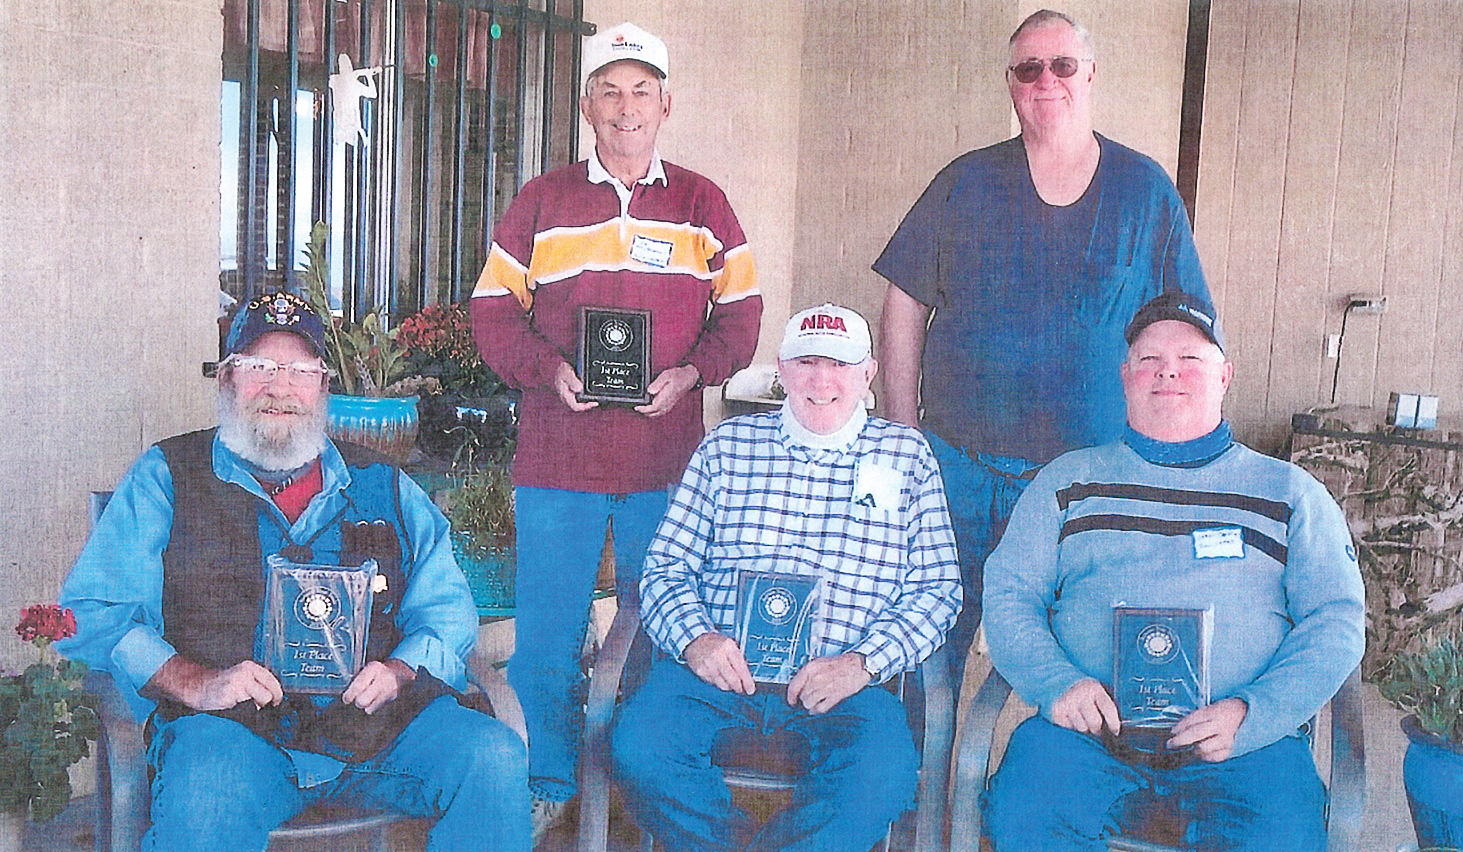 Sun Lakes team (left to right): Mac Mackerman, 69; Ted Tenbroeck, 73; Frank Nance, 68; Charles Chapman, 71; and Sean Jeffries, 65